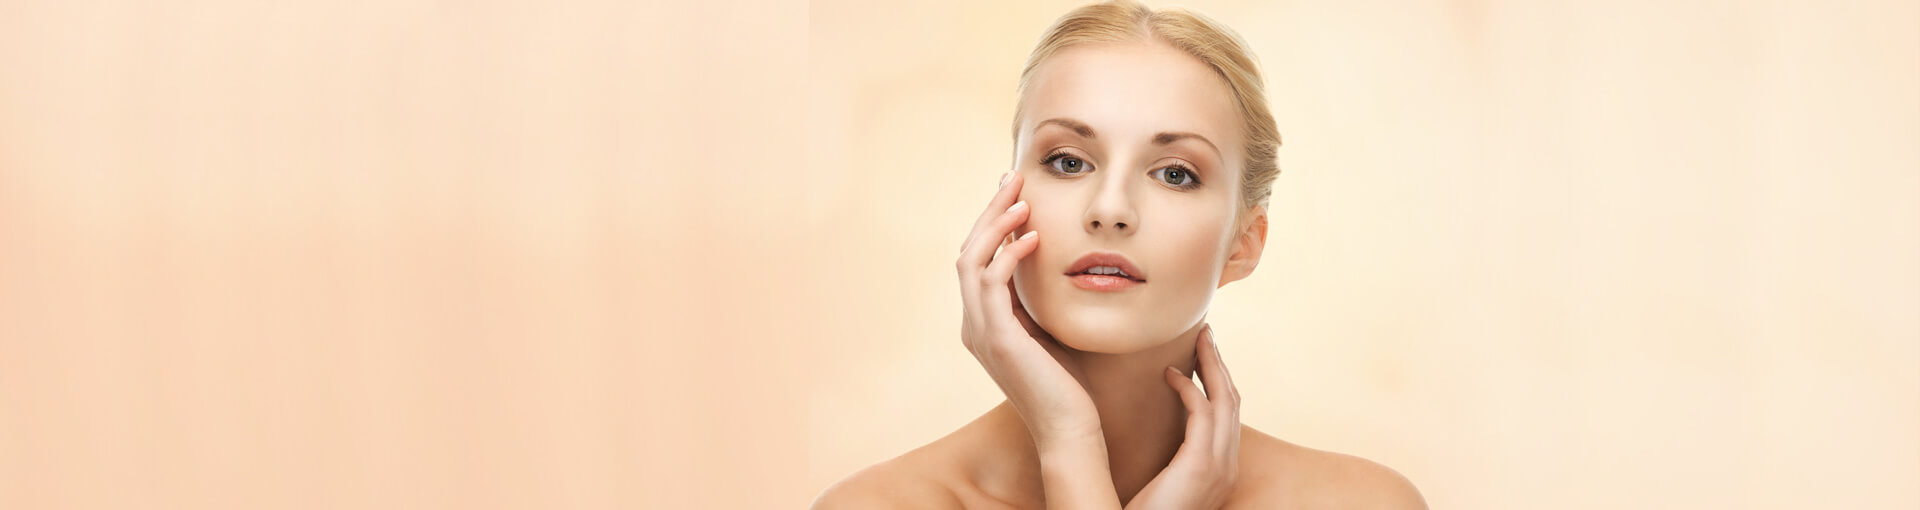 Soft Tissue Fillers - drs skin care